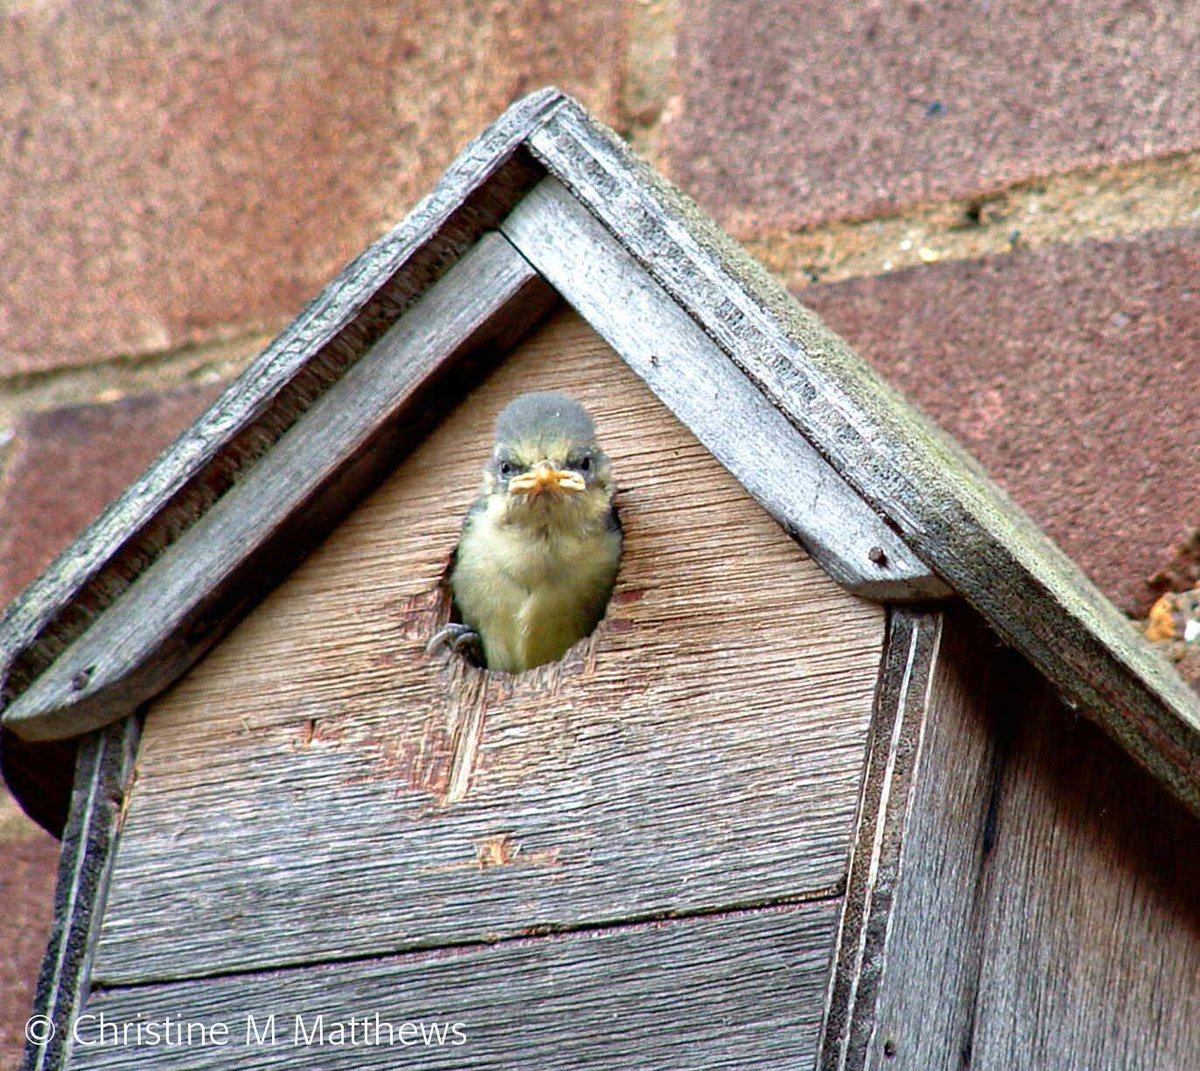 #NationalNestBoxWeek is now in full swing and in our new Demog Blog, @HazelEEvans talks about why nest boxes are important, and how you can give birds a helping hand getting settled in for the breeding season. Read it all on btoringing.blogspot.co.uk!